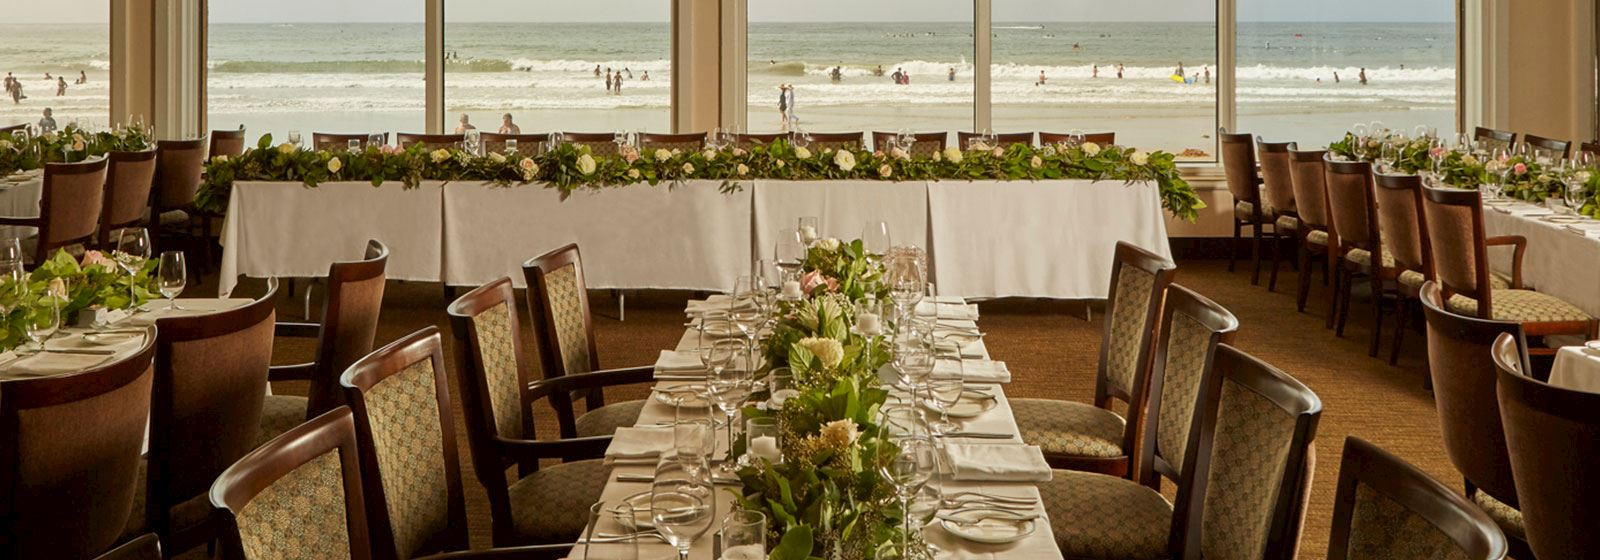 Celebrate at the Marine Room Restaurant In La Jolla top